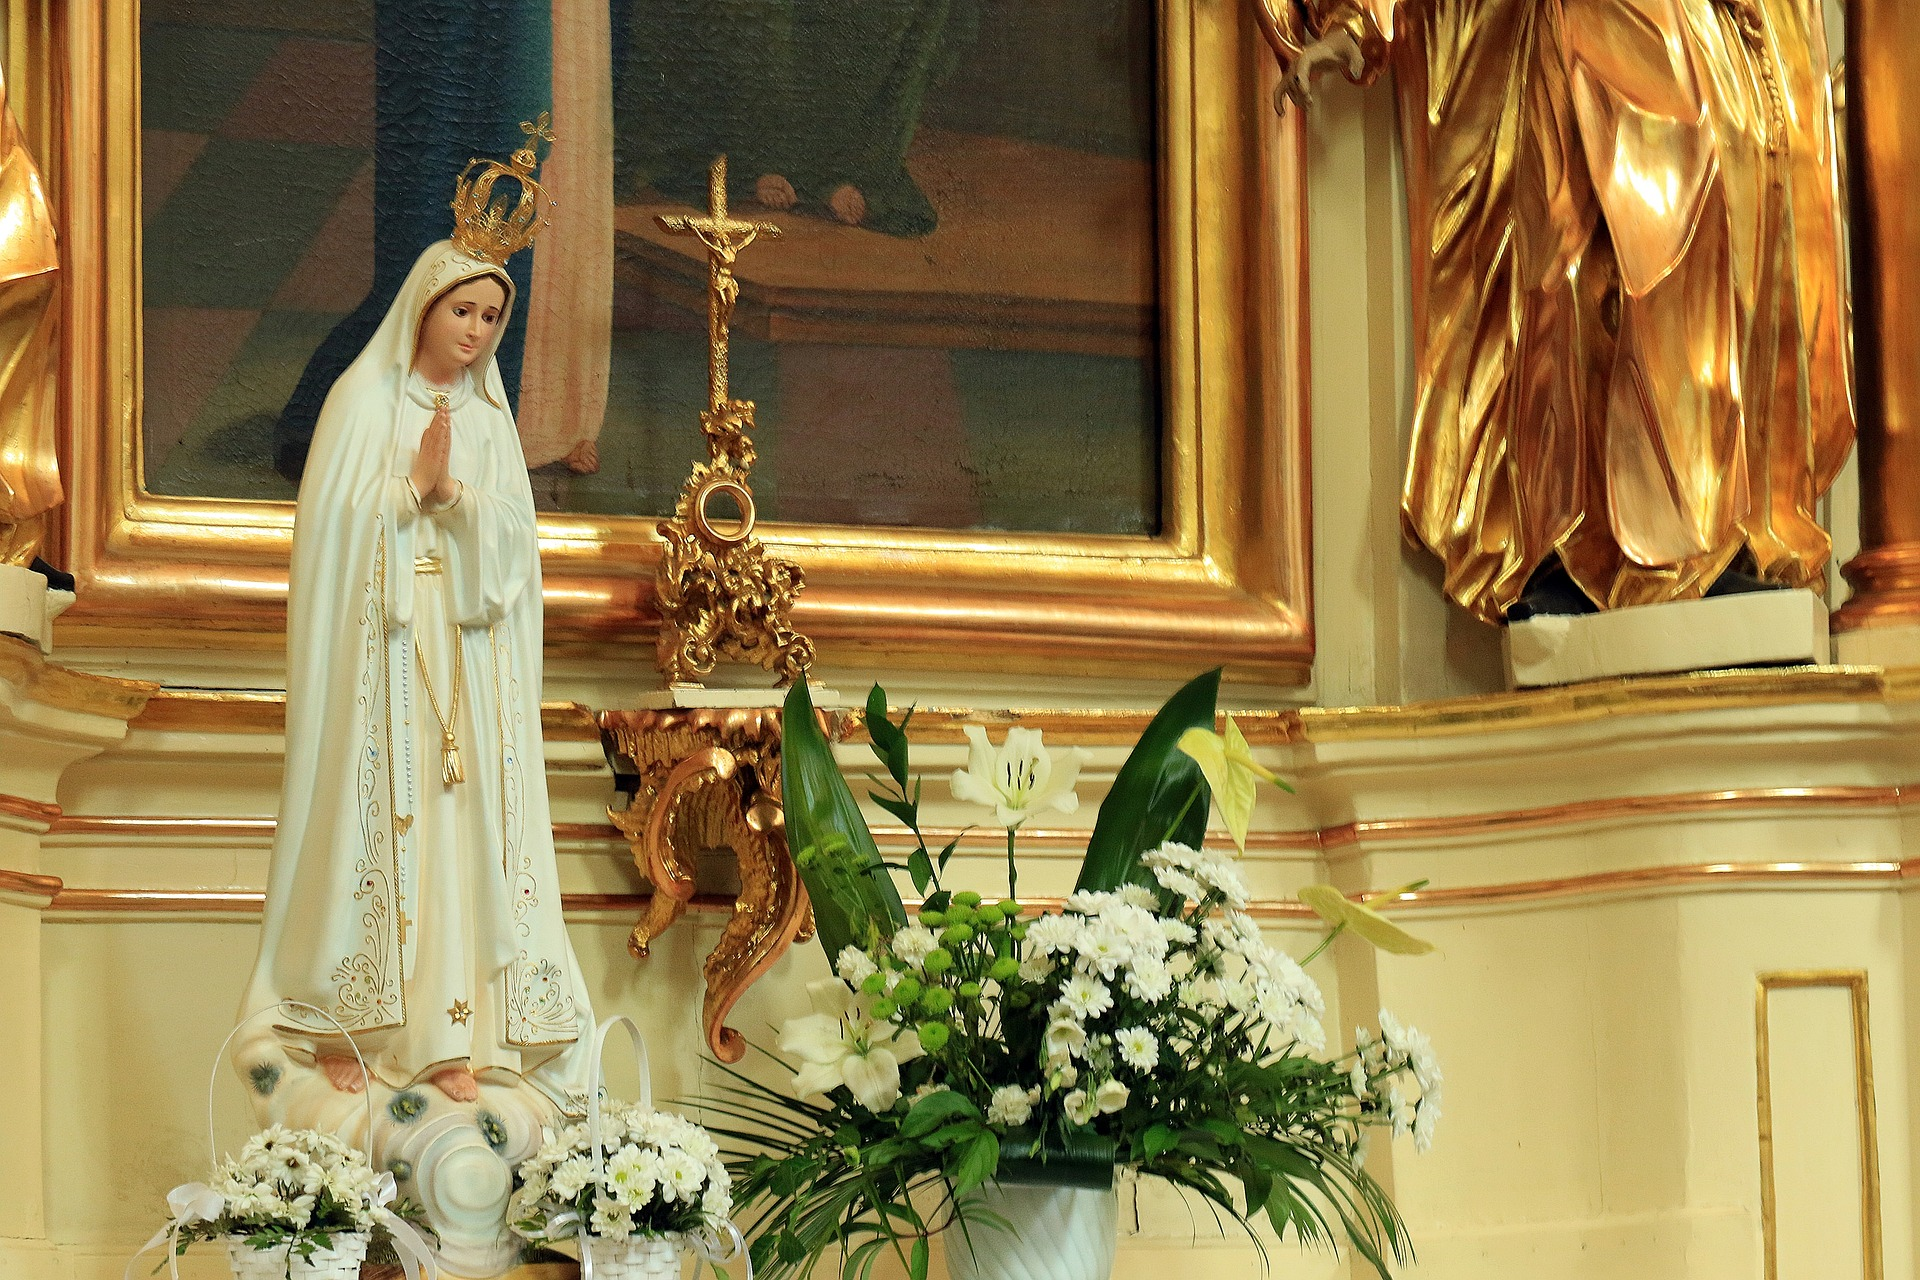 Our Lady of Fatima